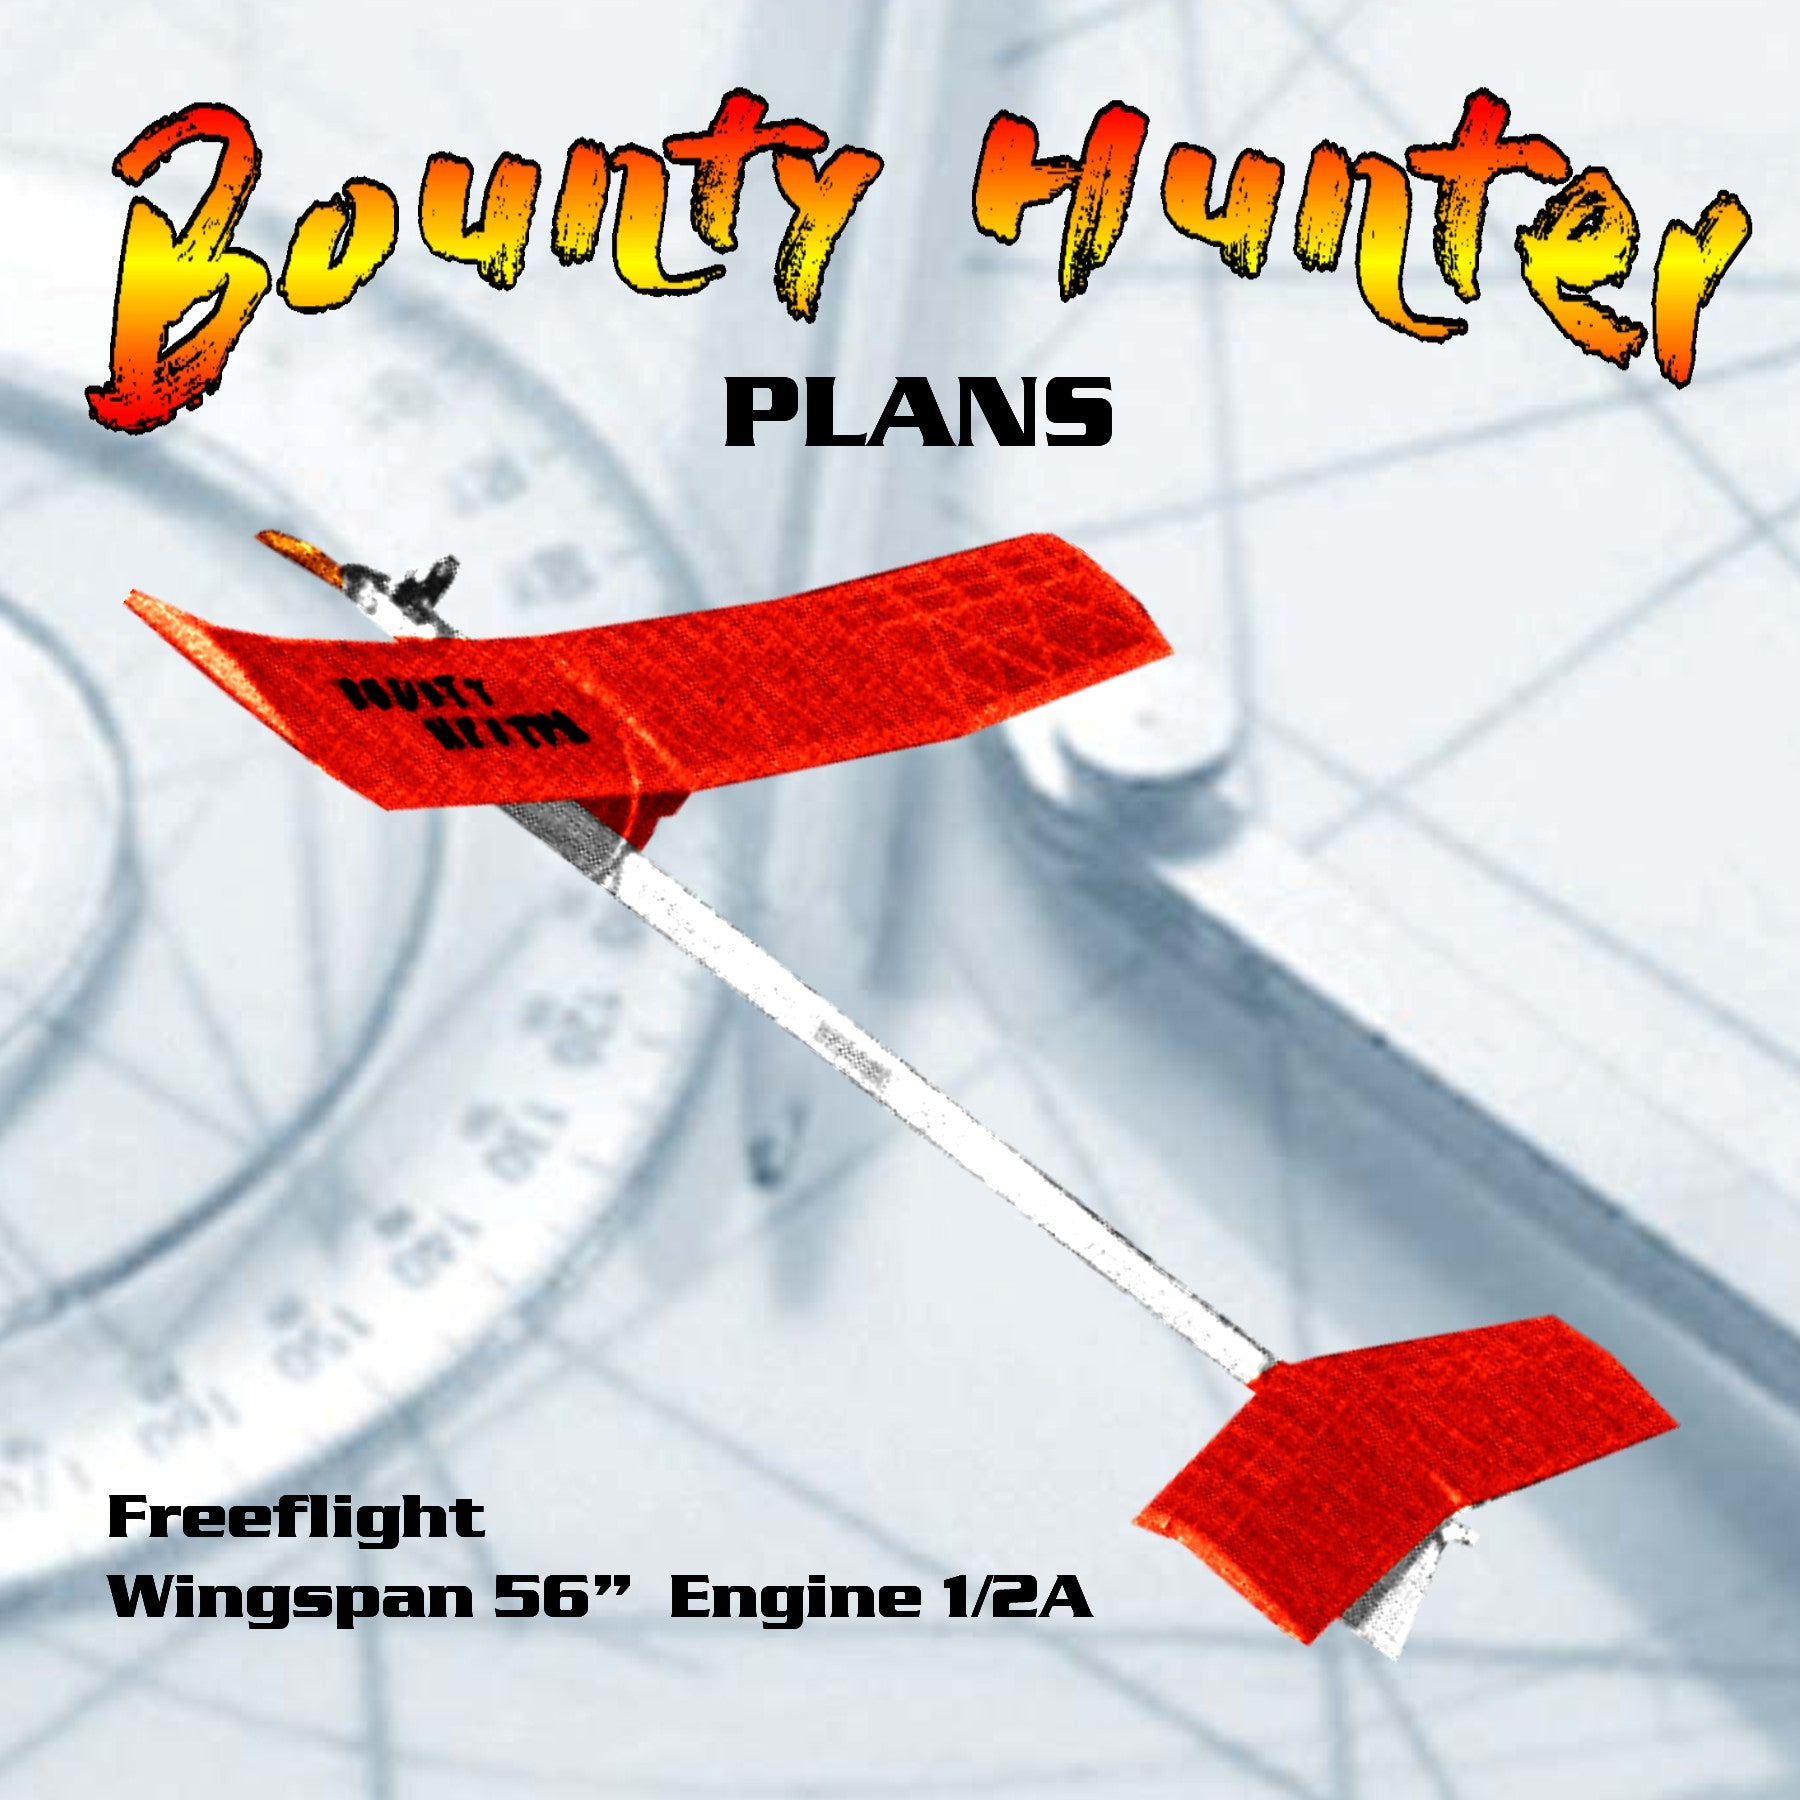 Full size printed plan vintage 1965 VTO's with a passion Freeflight Bounty Hunter 1/2A